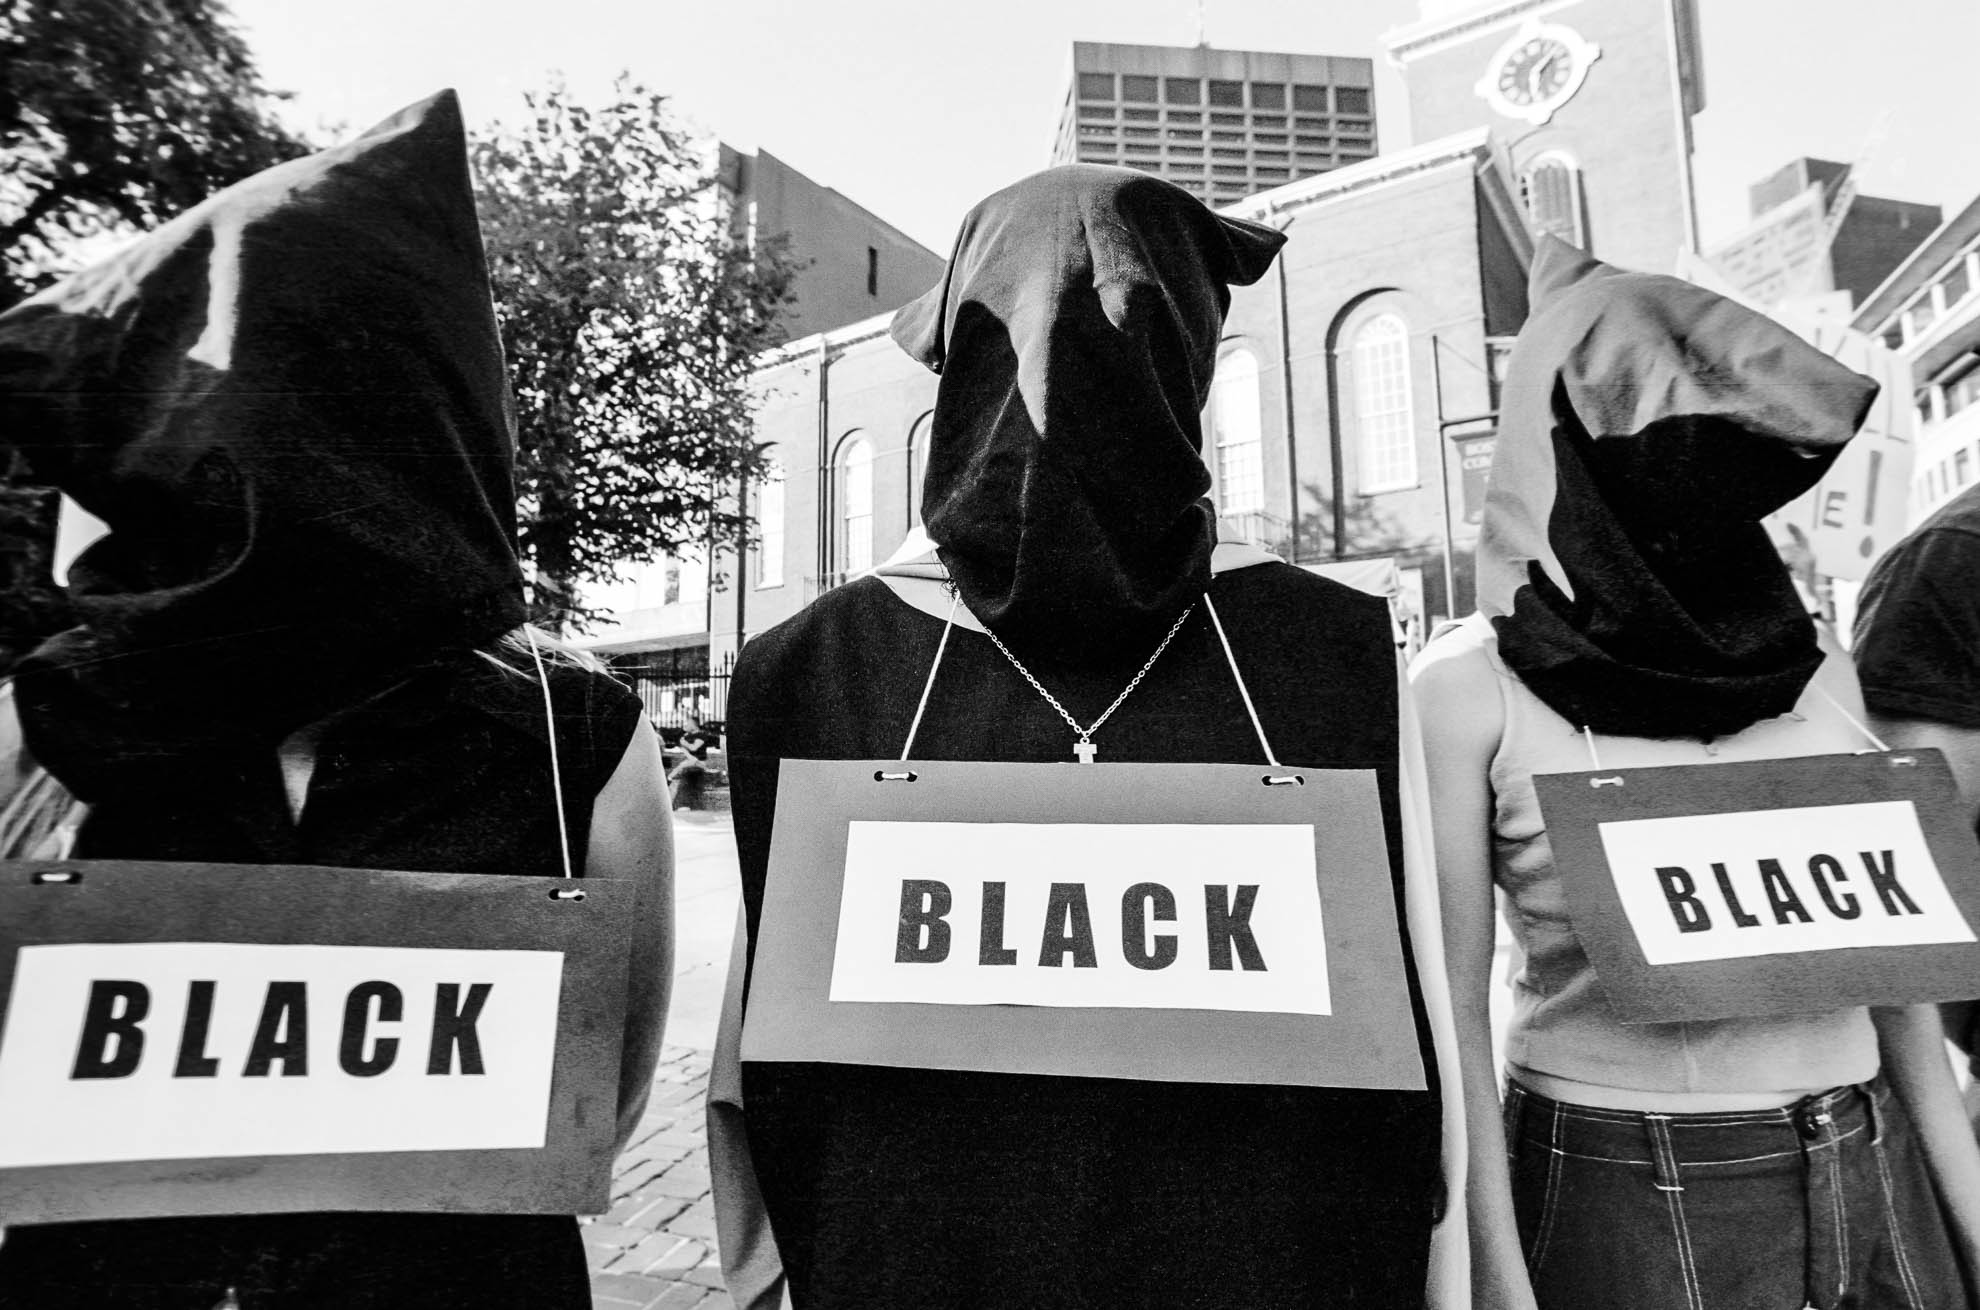 death penalty, photography, photos, execution, prison, documentary, race, federal, protest